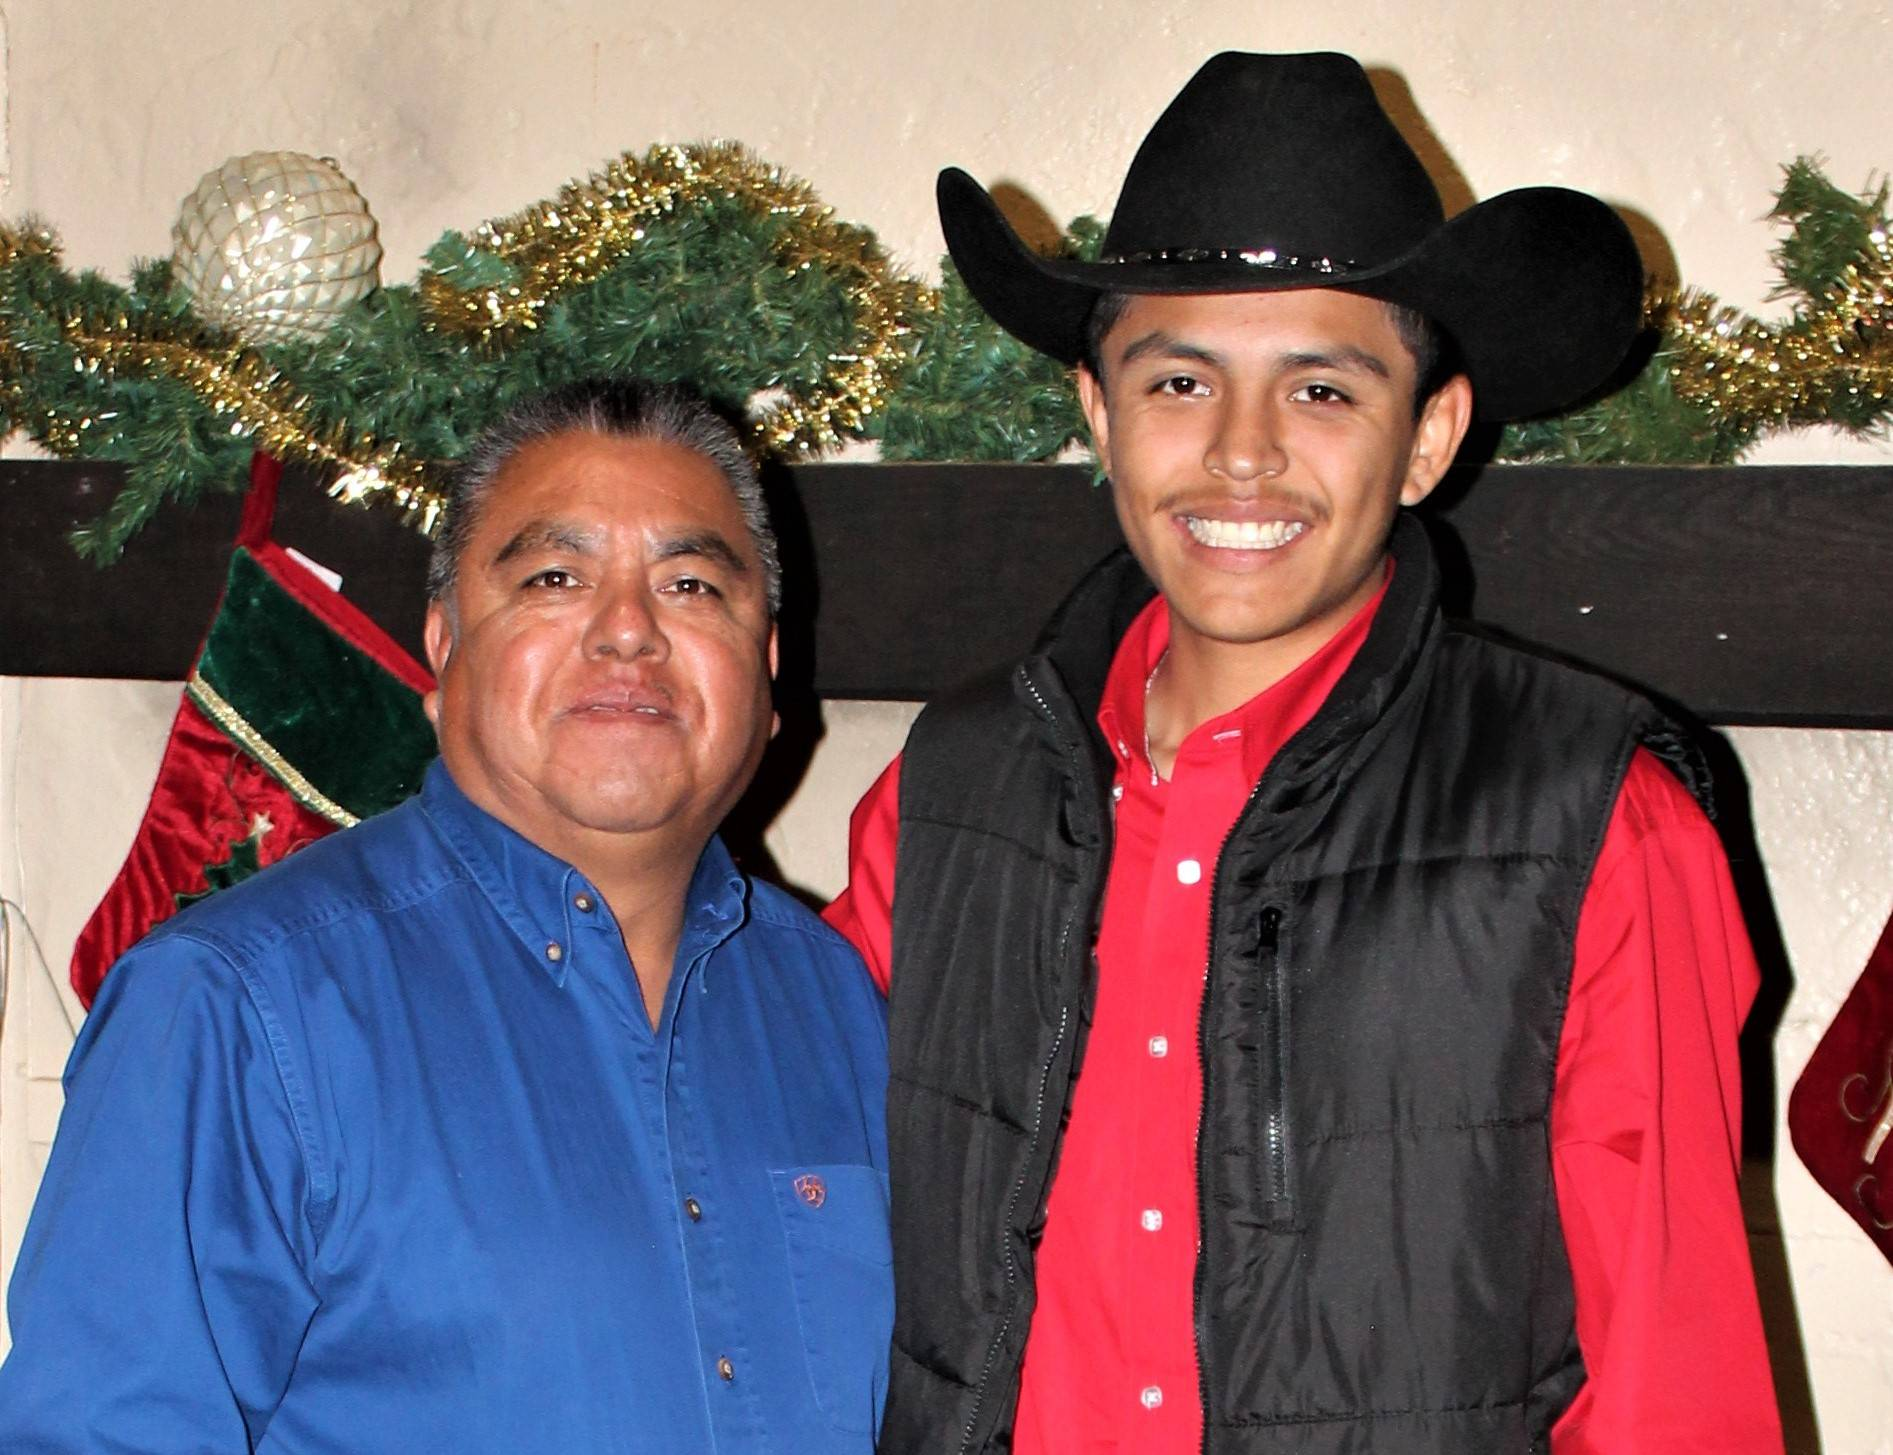 Andres and his father